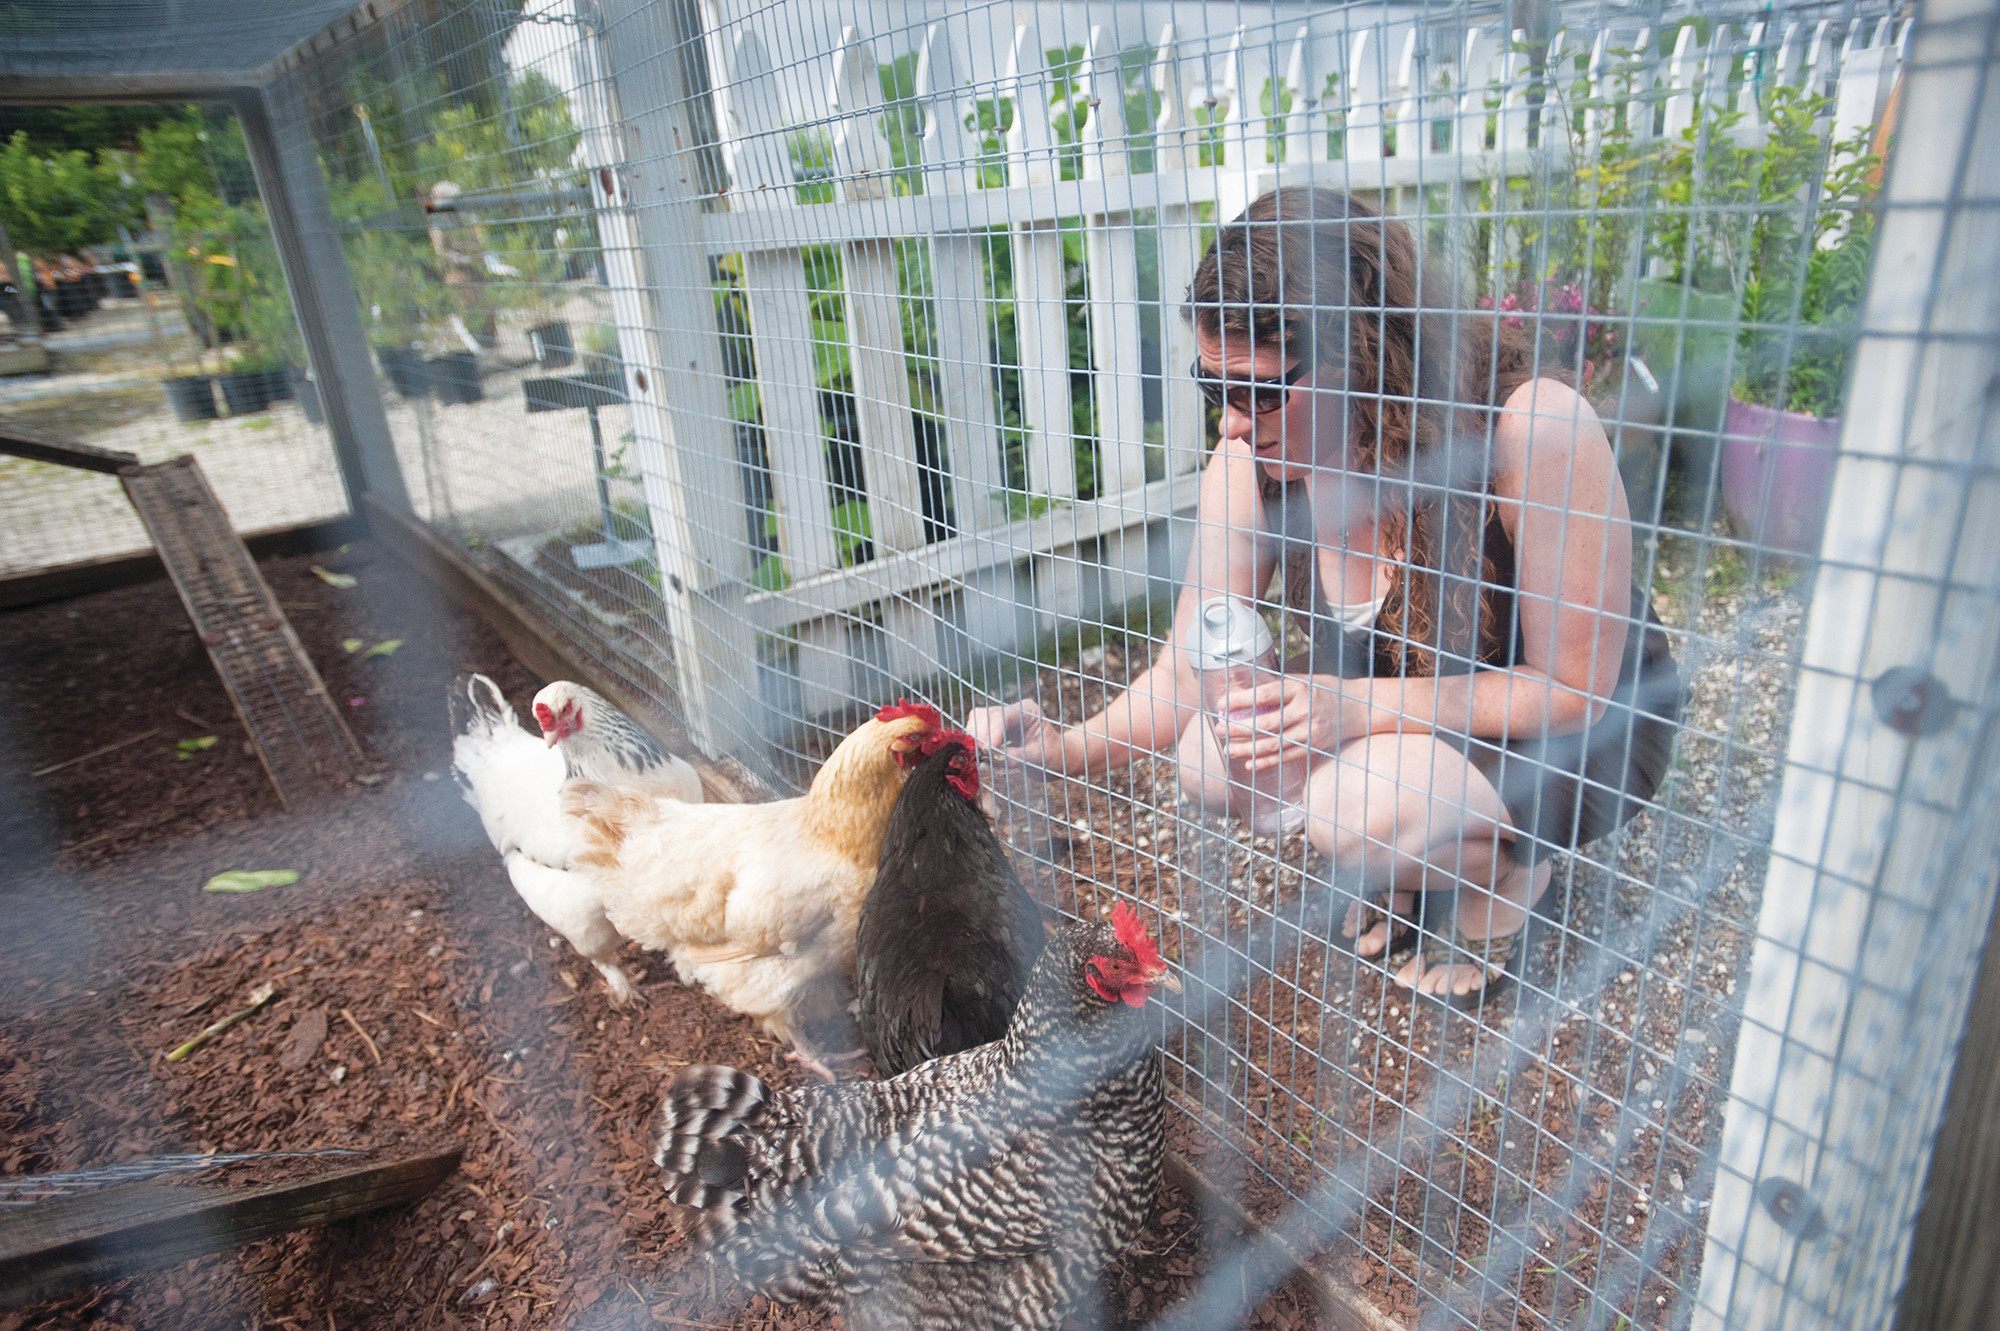 The chicken coop at Trad's Garden Center in Mandarin is one of the few to be grandfathered into the previous ordinance, making it legal.